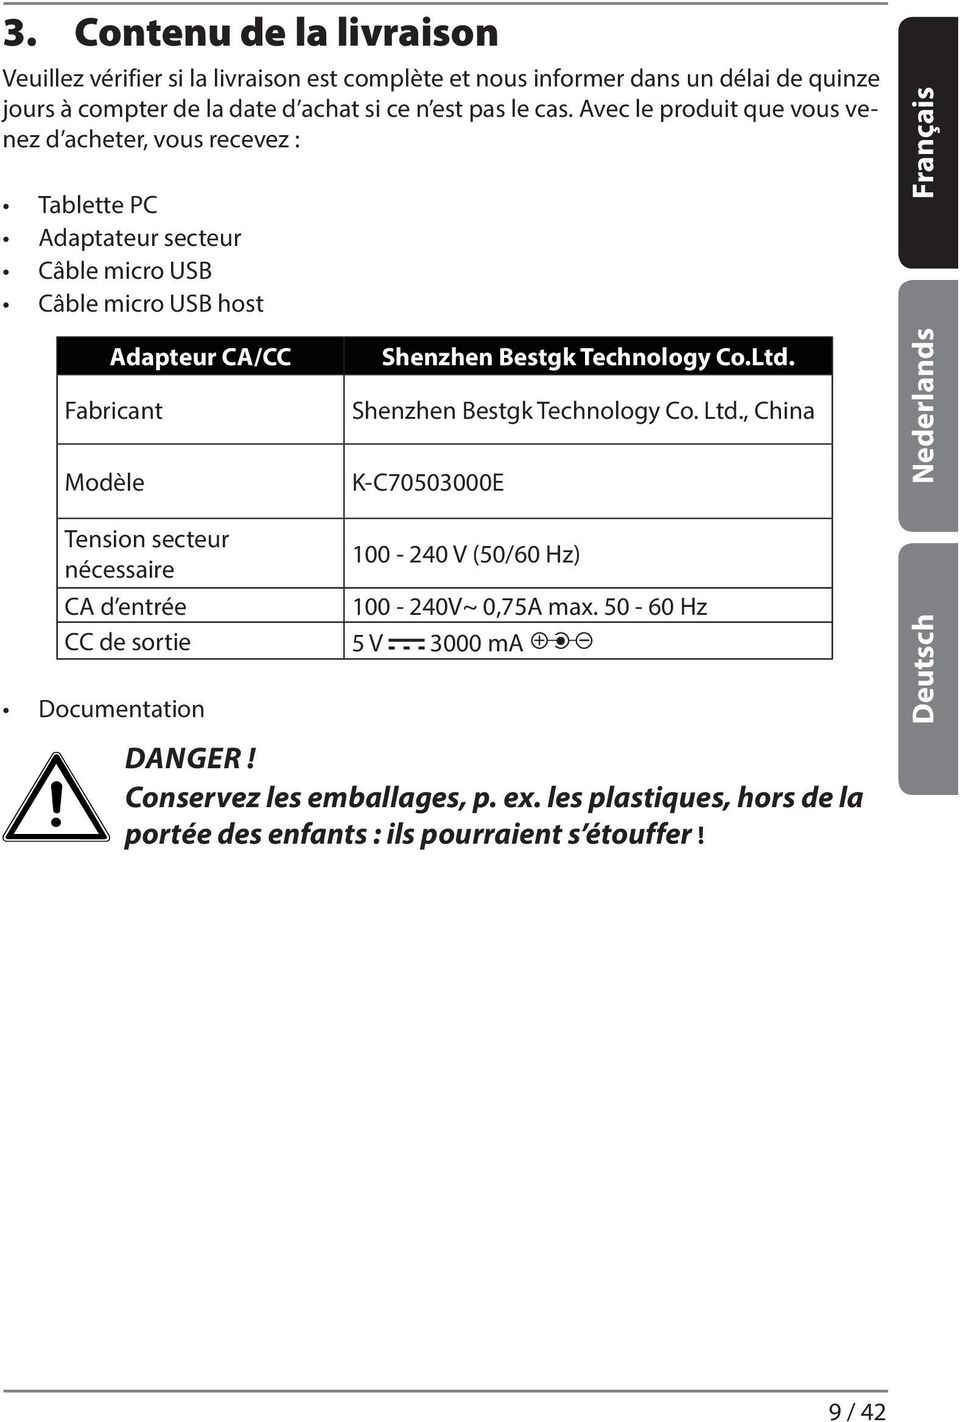 Bestgk Technology Co.Ltd. Shenzhen Bestgk Technology Co. Ltd., China K-C70503000E Nederlands Tension secteur nécessaire 100-240 V (50/60 Hz) CA d entrée 100-240V~ 0,75A max.